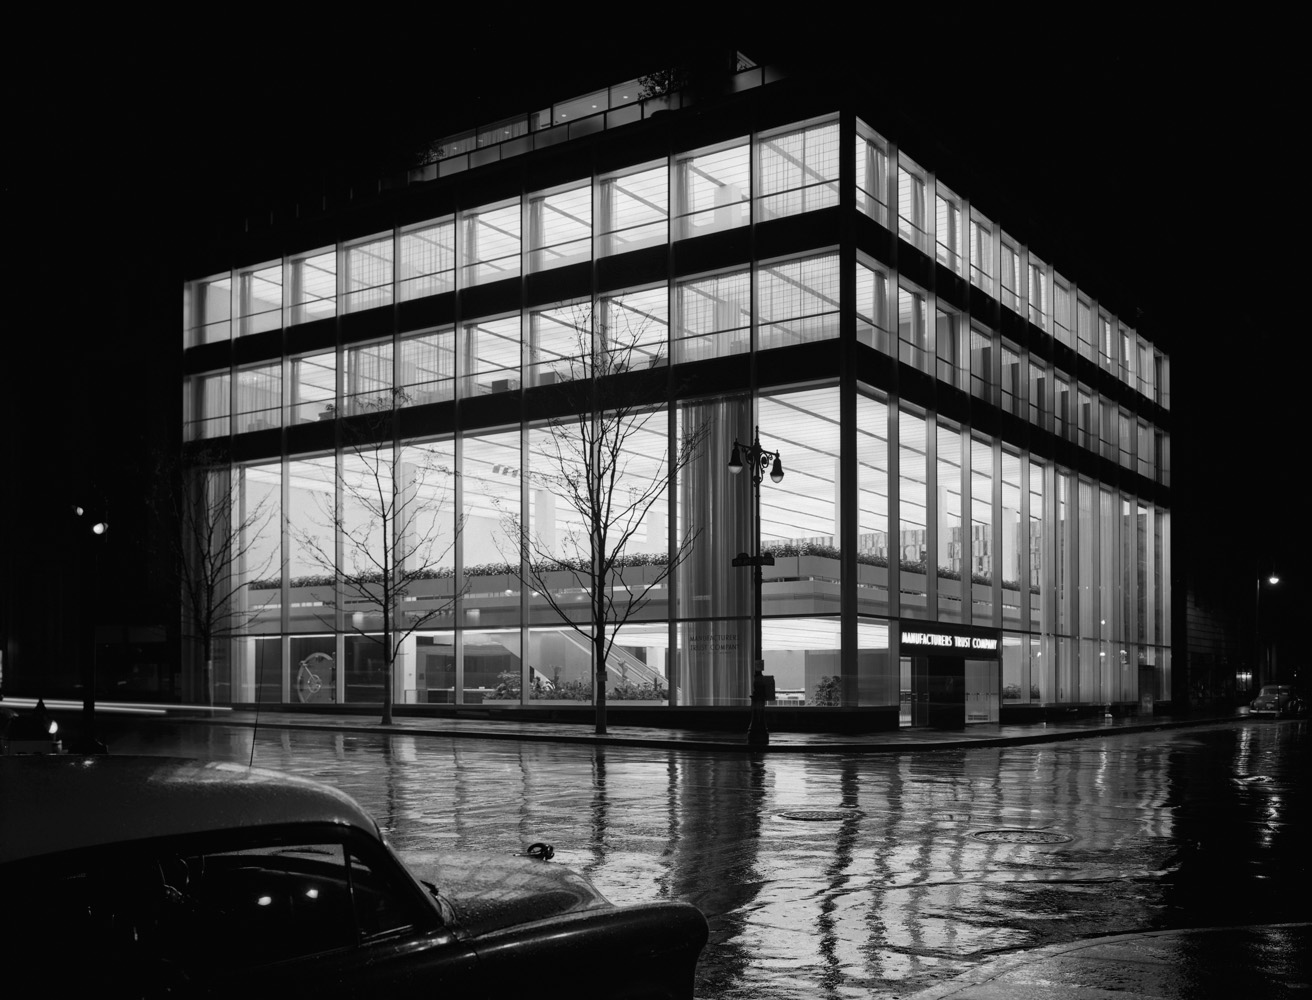 Manufacturer's Trust Company, Fifth Avenue, Skidmore, Owings & Merrill, New York, N.Y., 1954